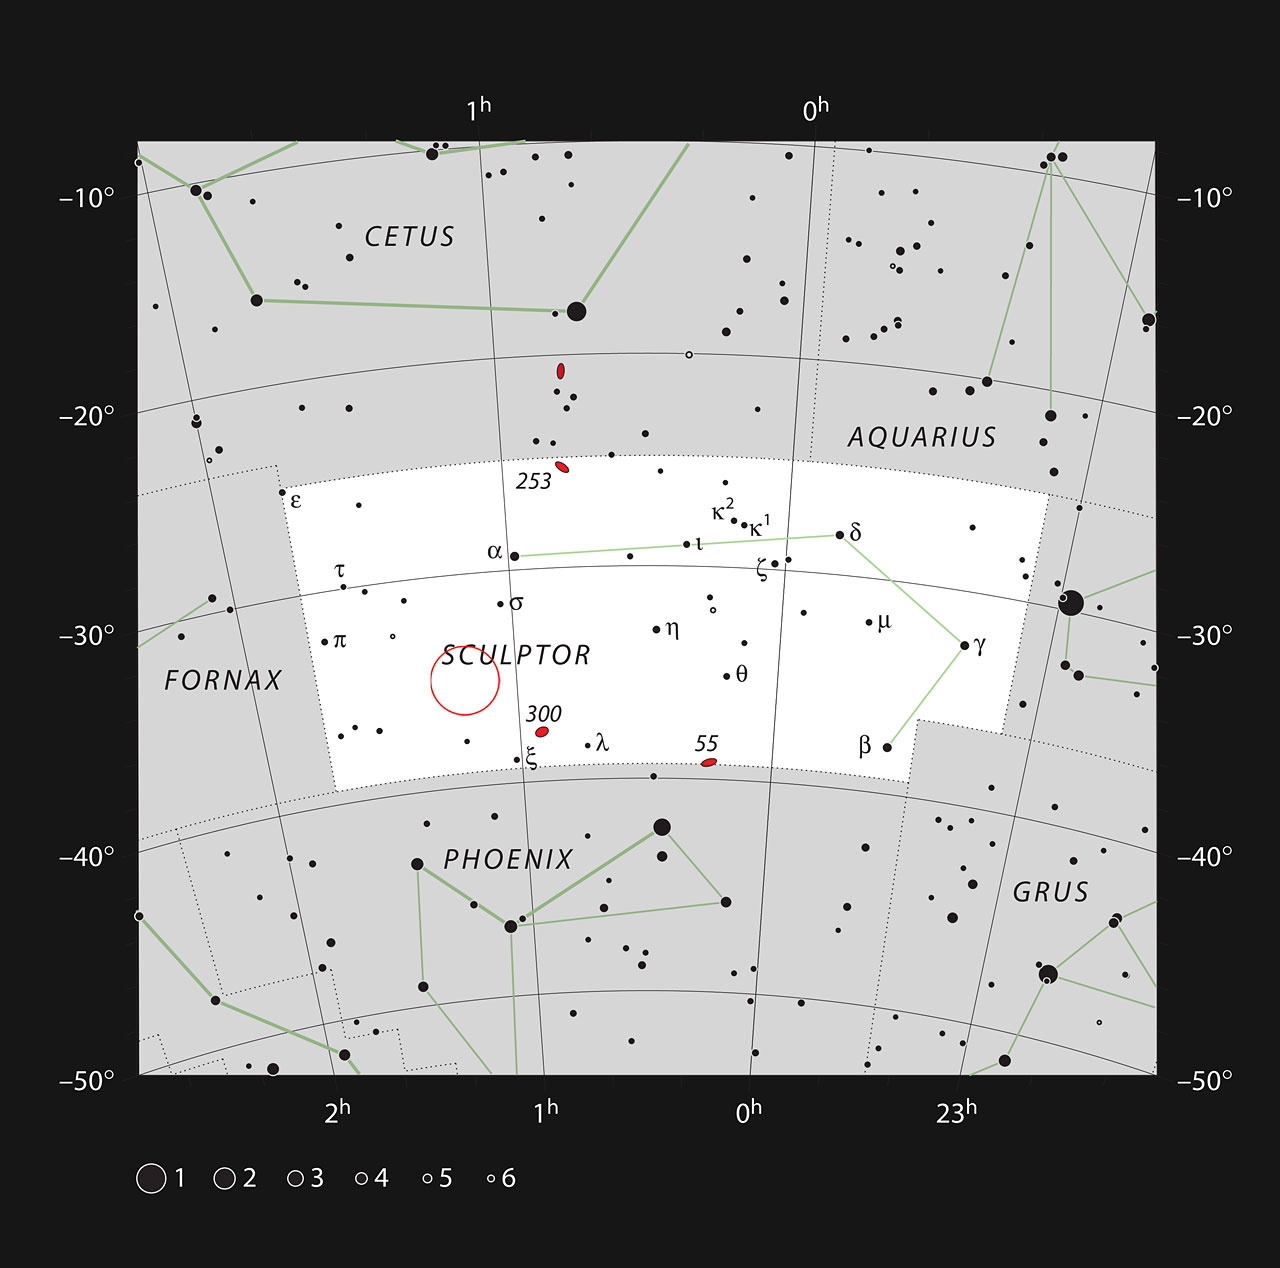 quasar HE0109-3518 in the constellation of Sculptor